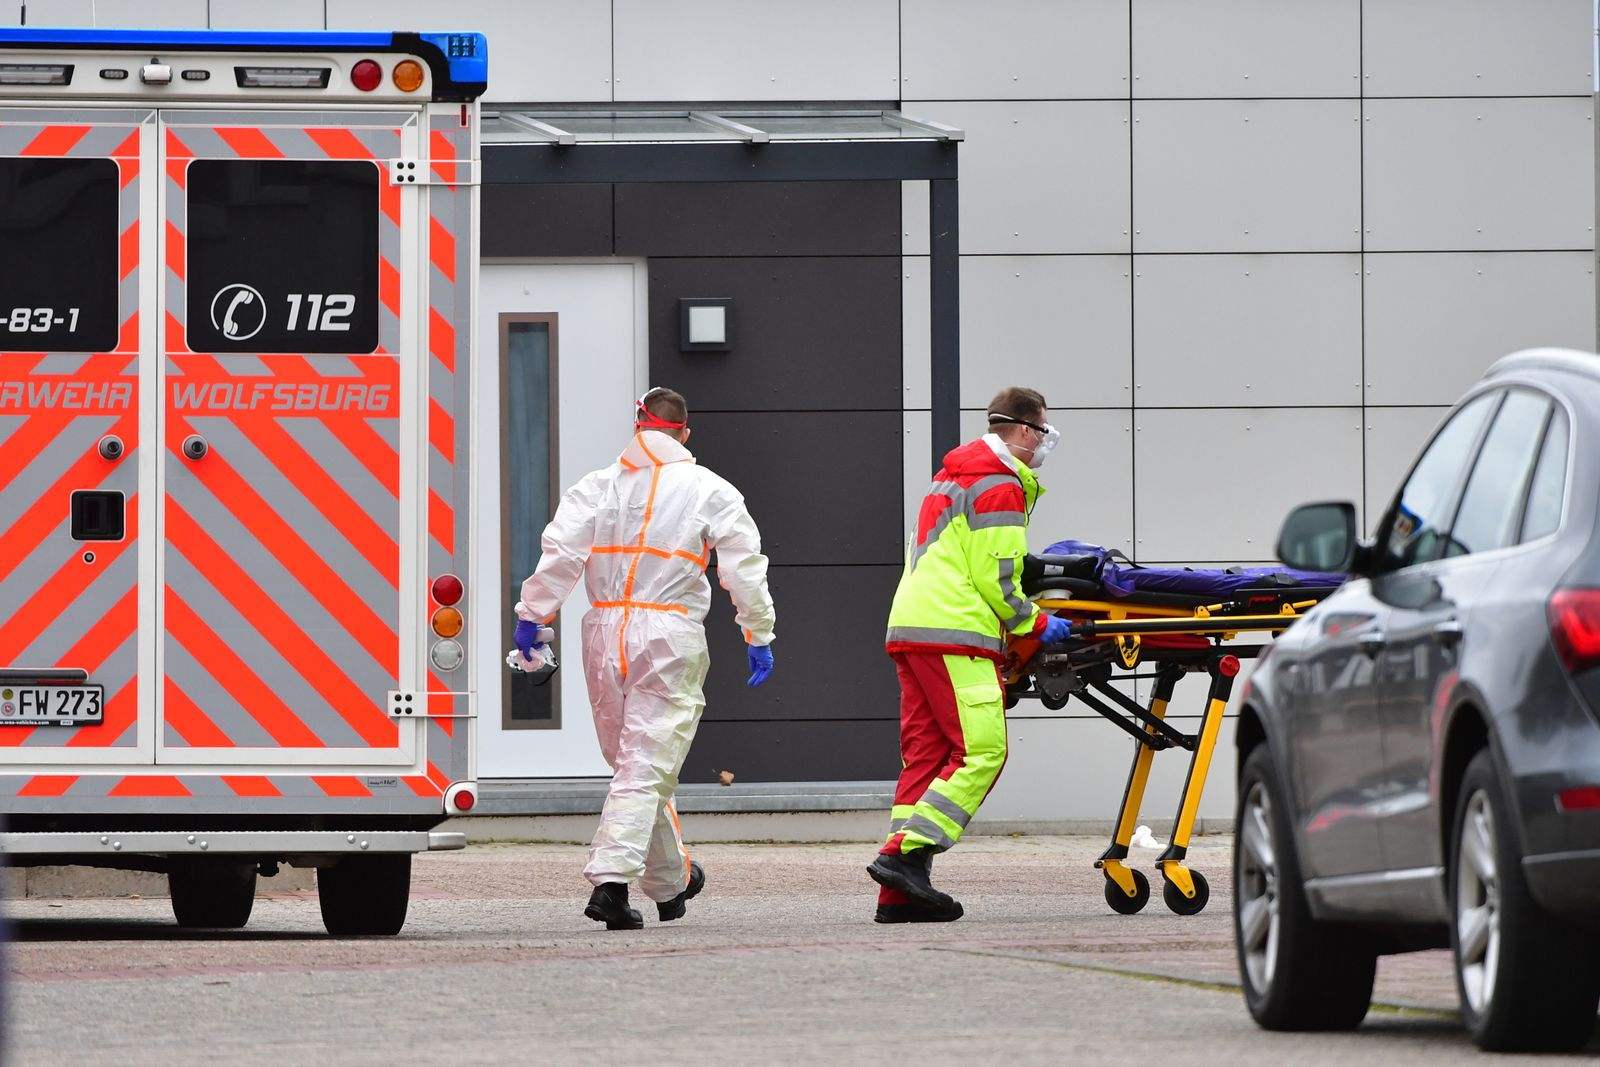 12 Dead At Wolfsburg Senior Care Home Hit By Covid-19 Infections